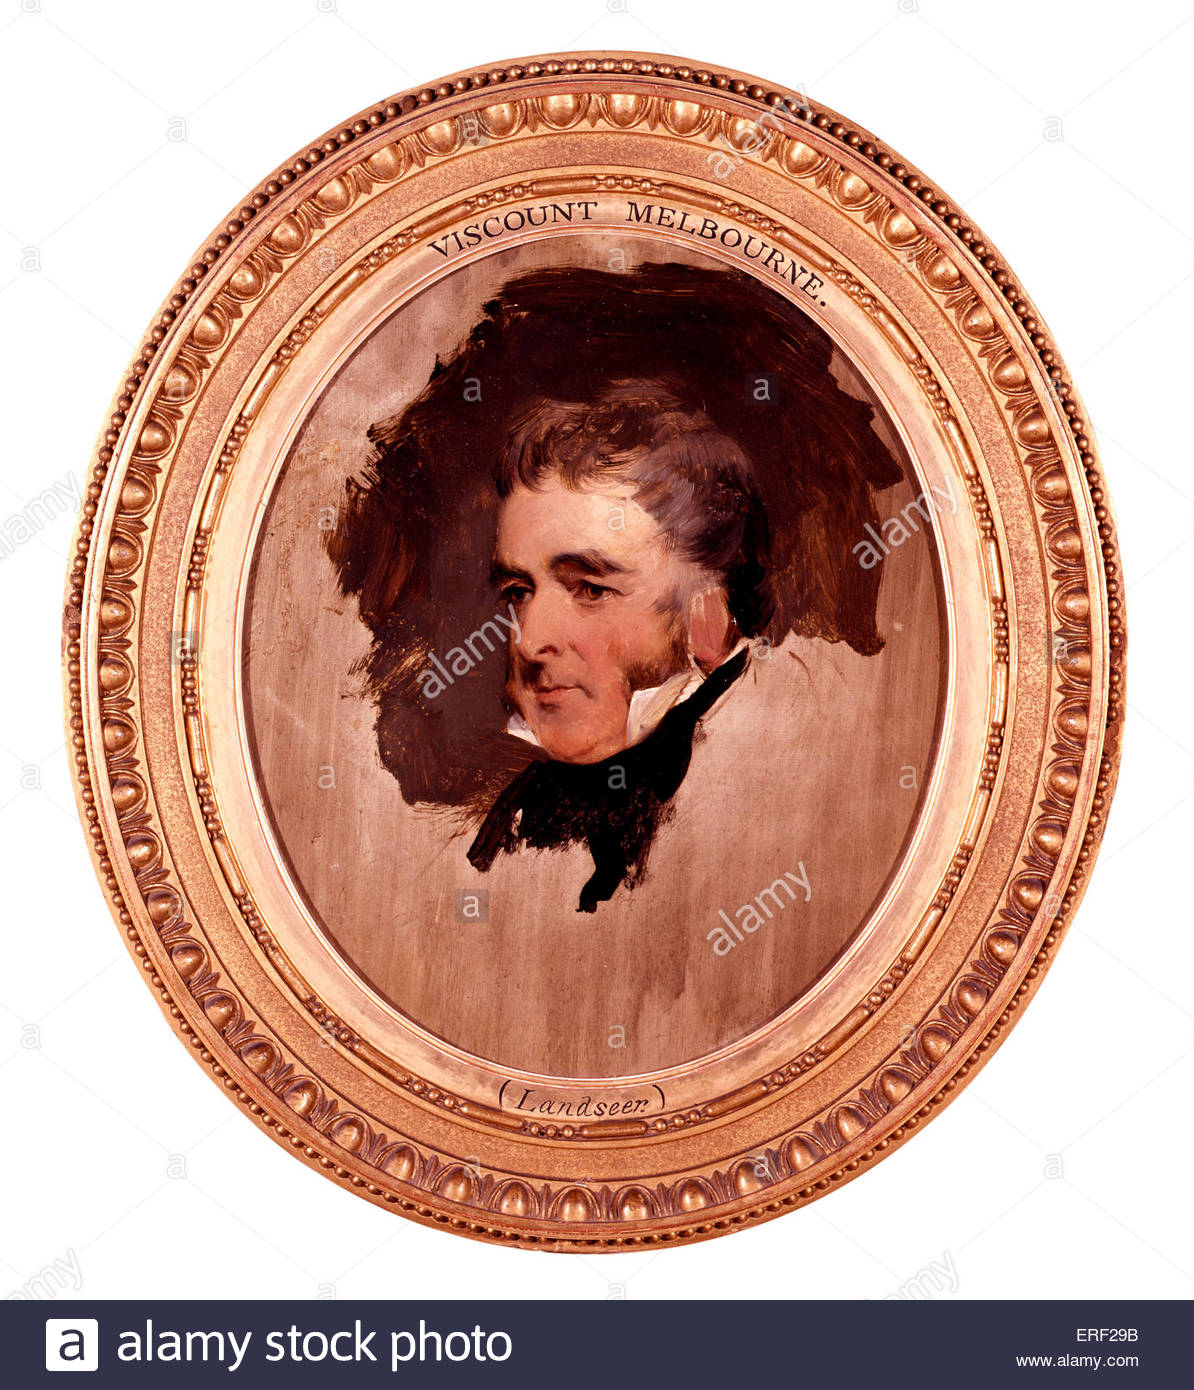 William Lamb, 2nd Viscount Melbourne by Sir Edwin Henry Landseer. WL: British Whig statesman who served as Home - Stock Image